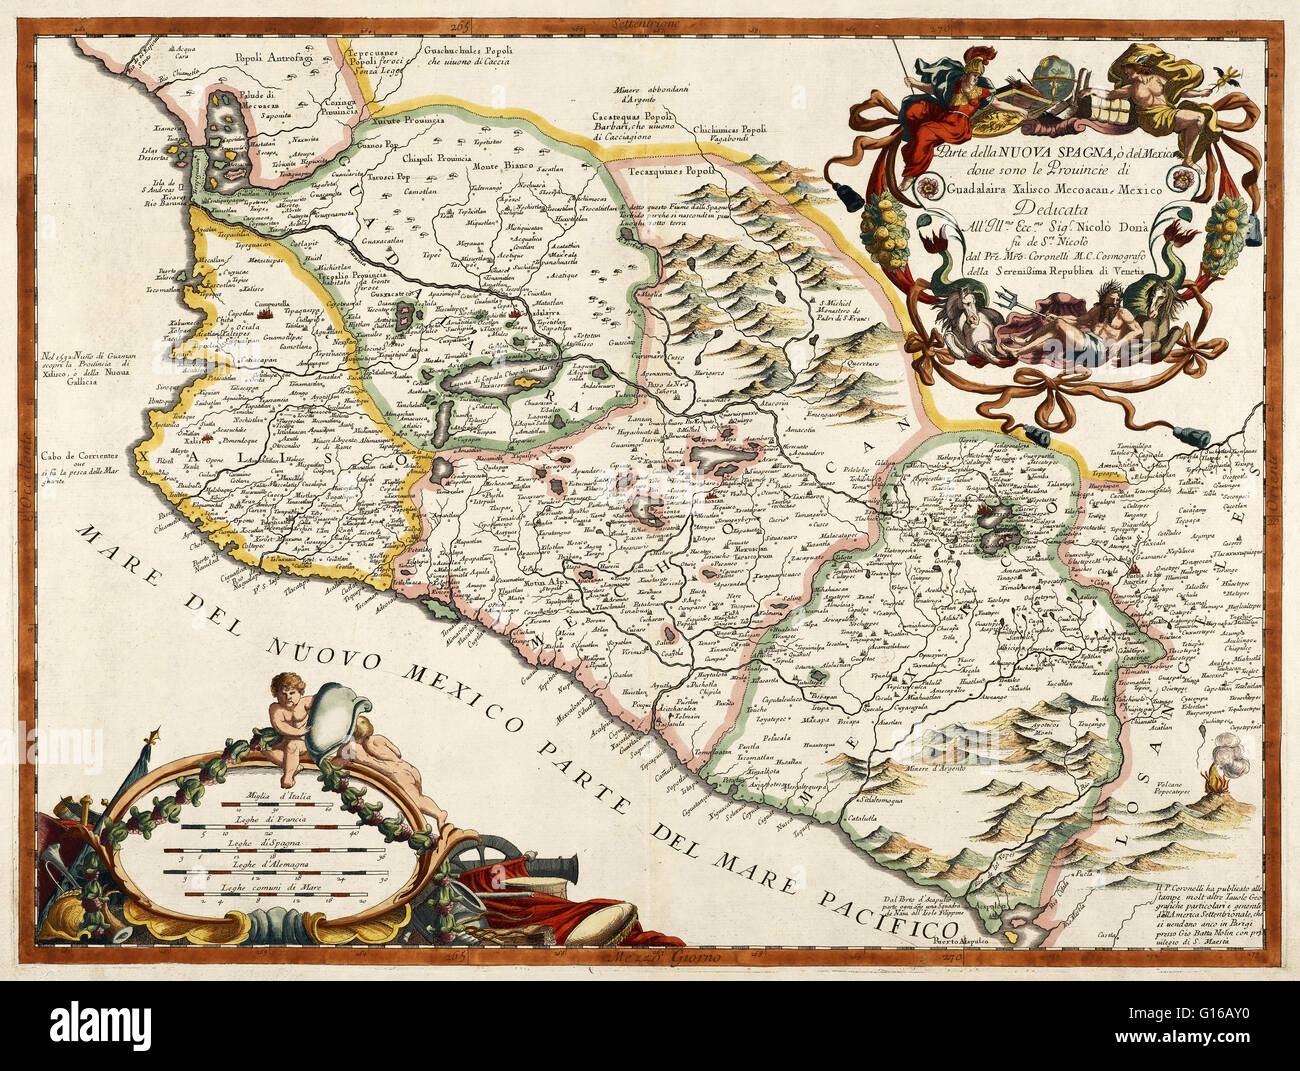 A 16th century map of New Spain or Mexico by Diego Gutirrez who